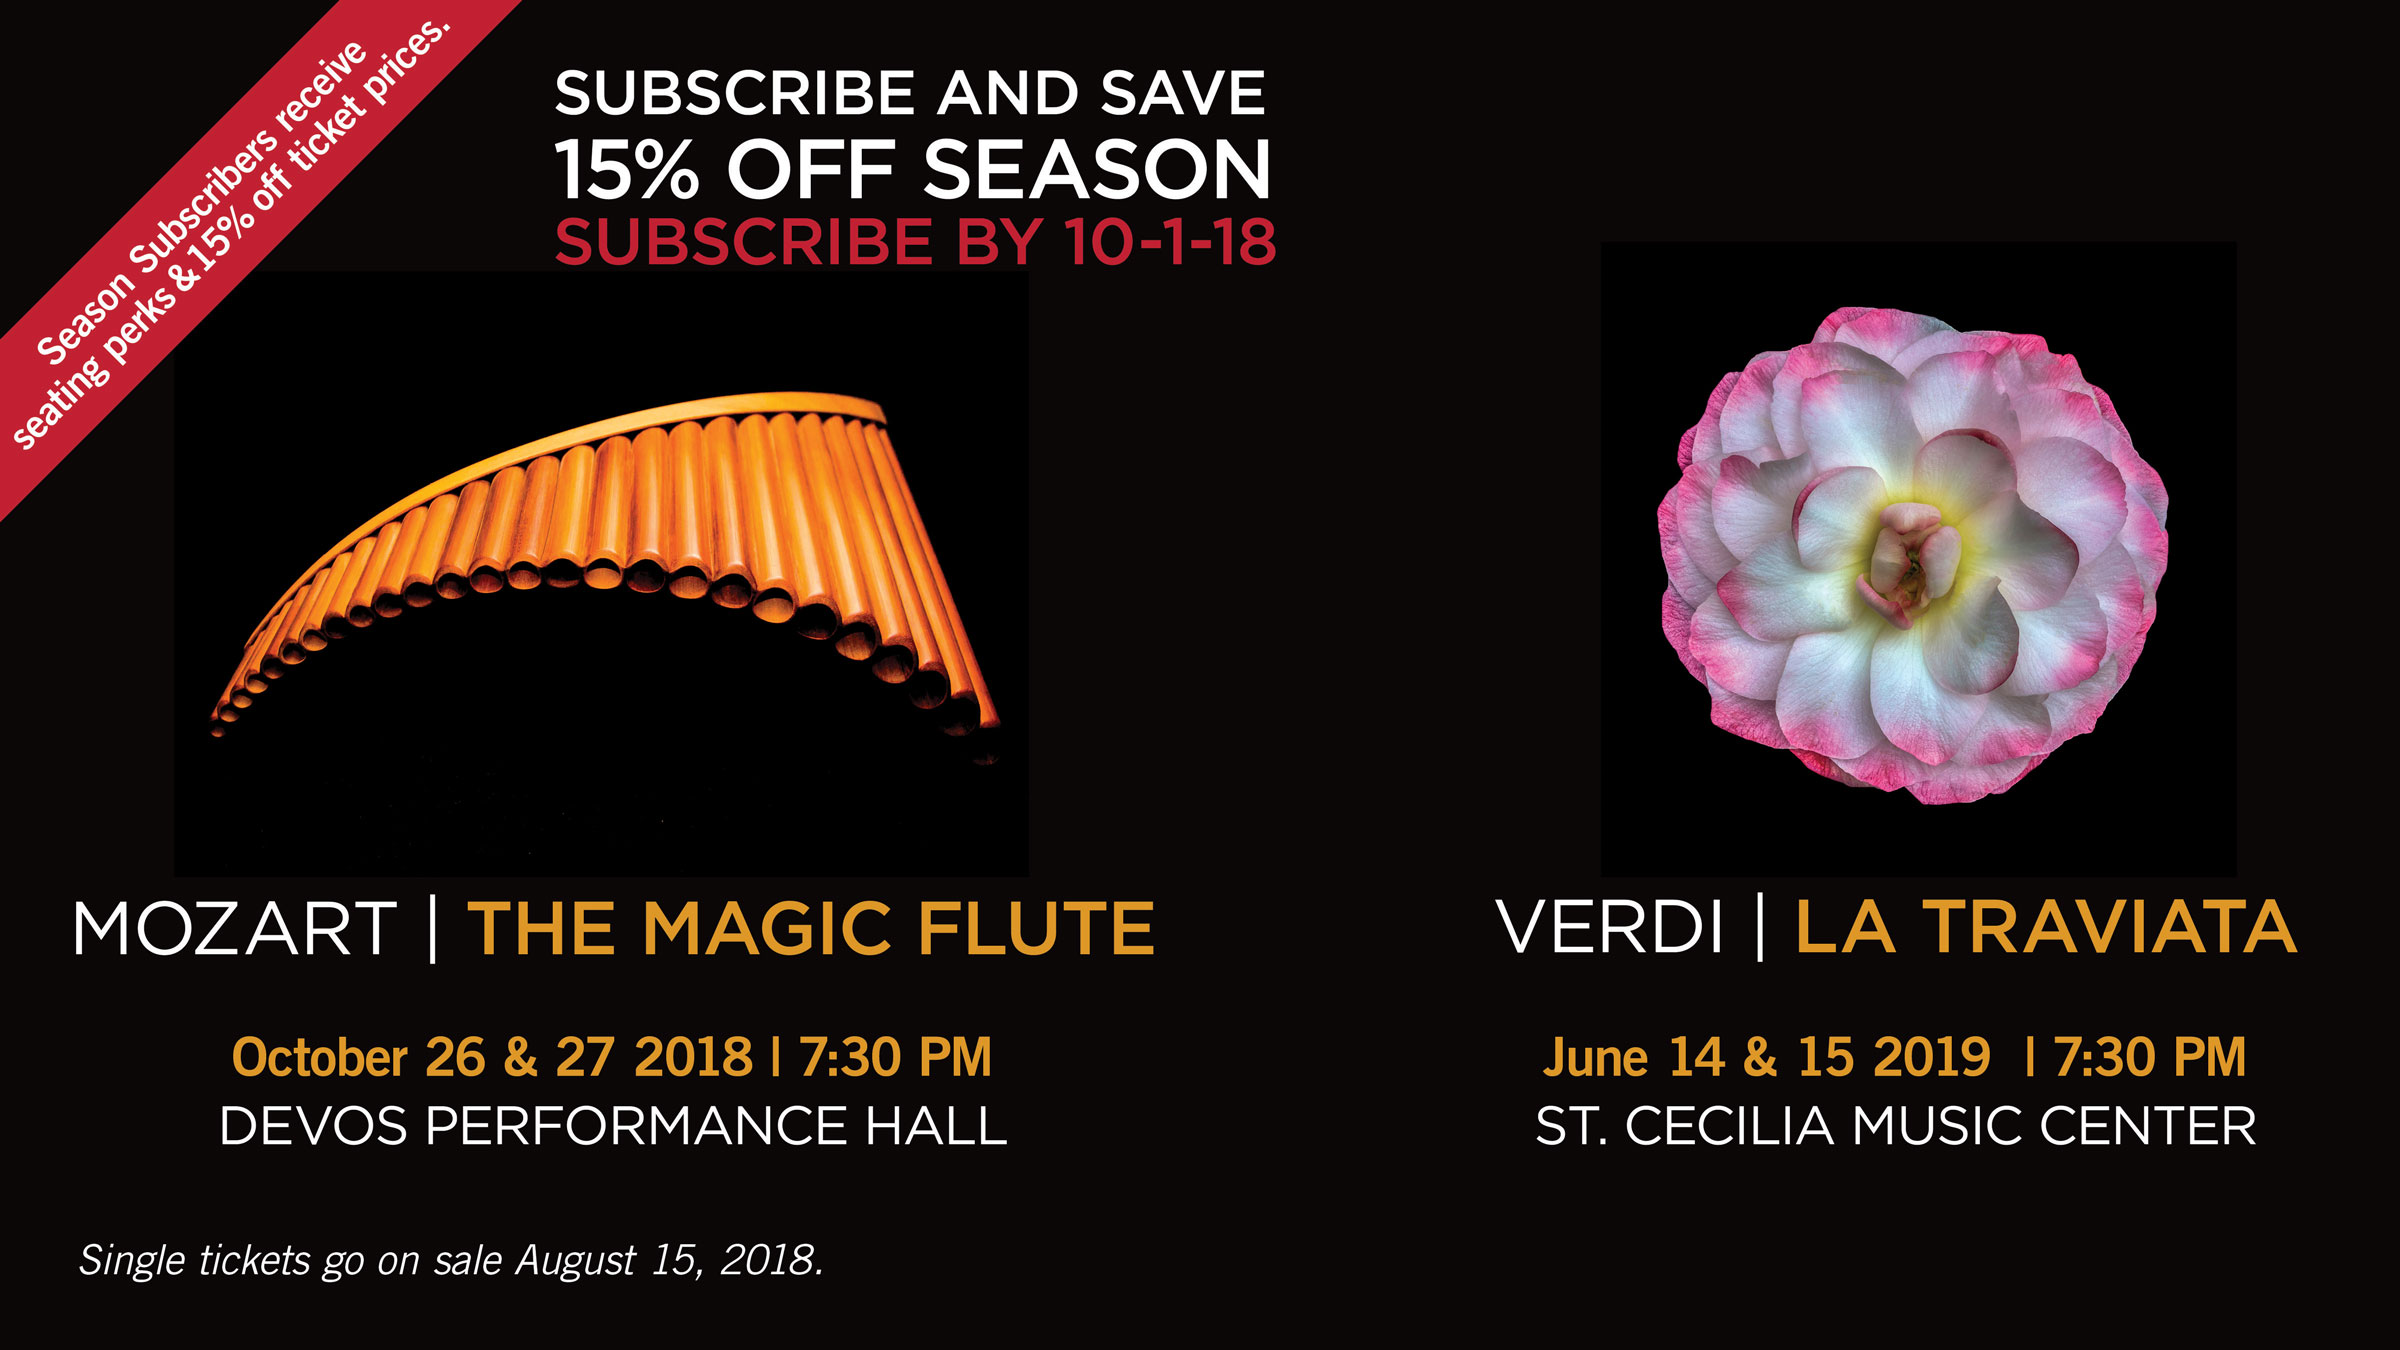 Subscribe to our 2018 season and save